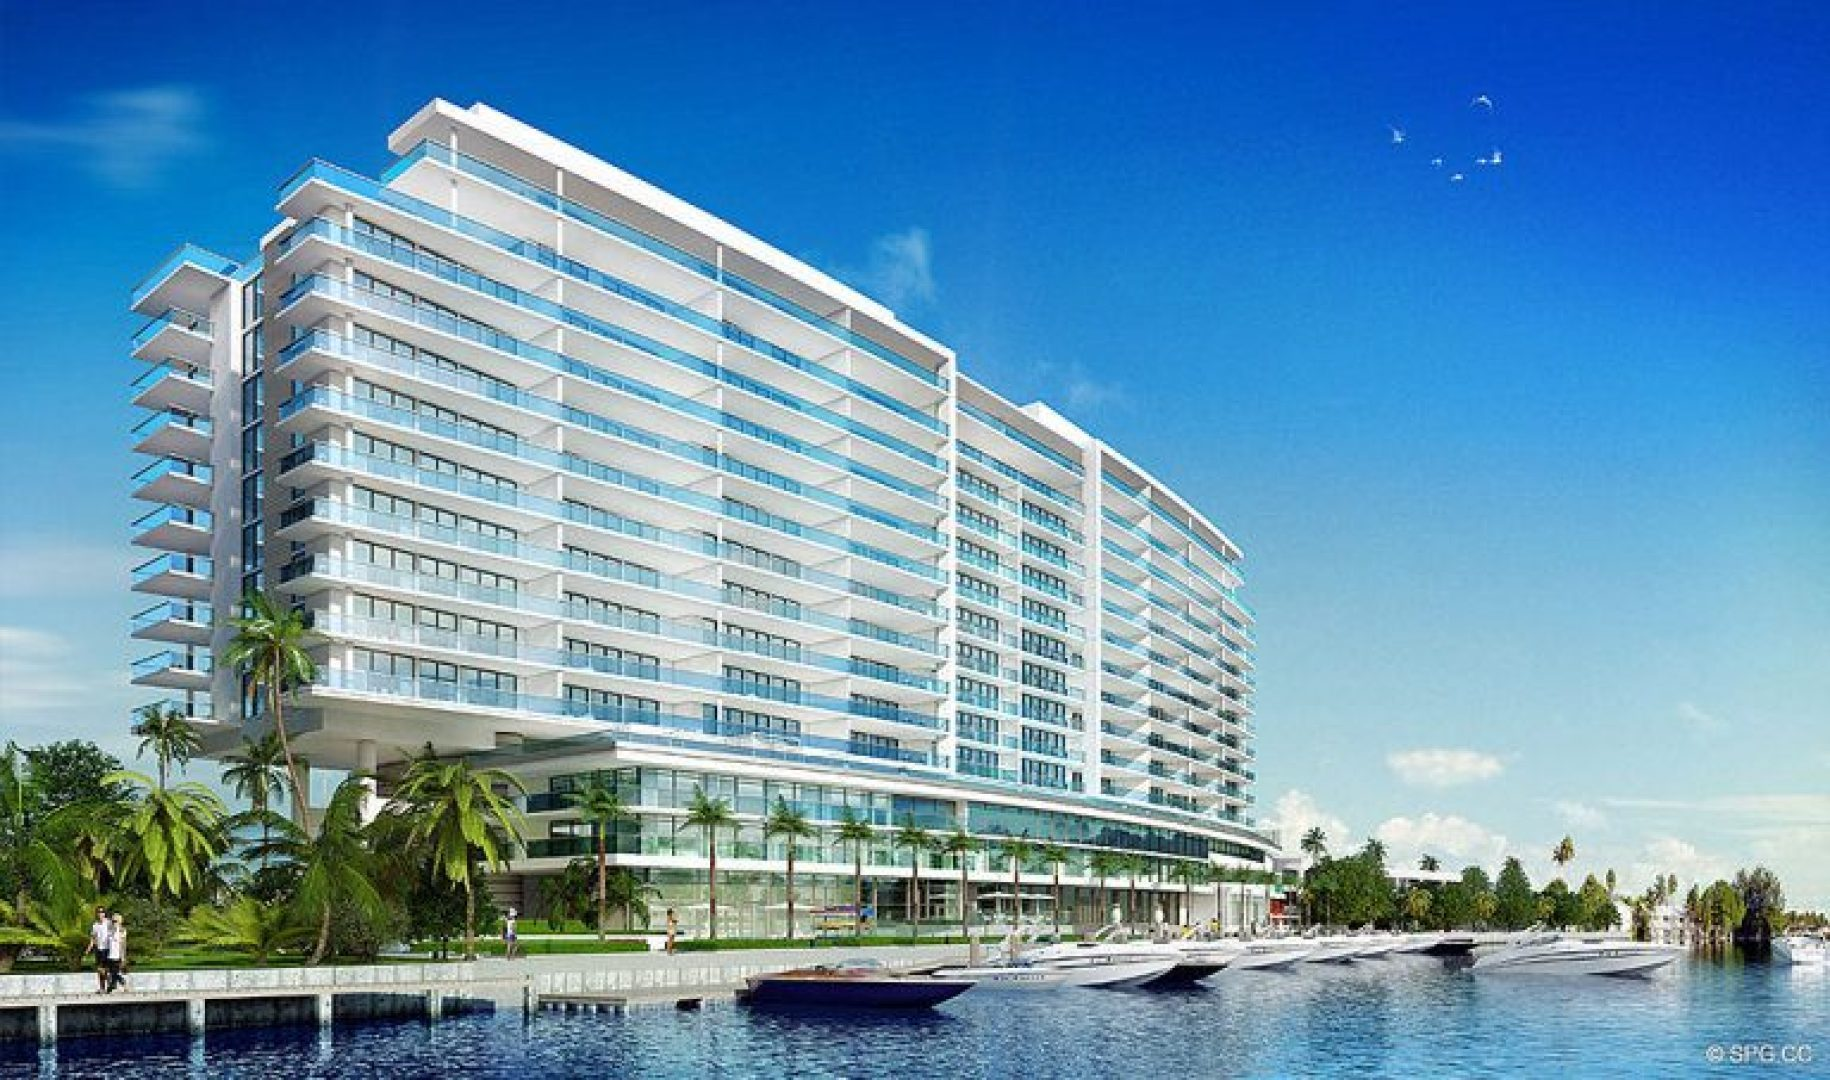 Concept Design for Riva, Luxury Waterfront Condos in Fort Lauderdale, Florida 33304.